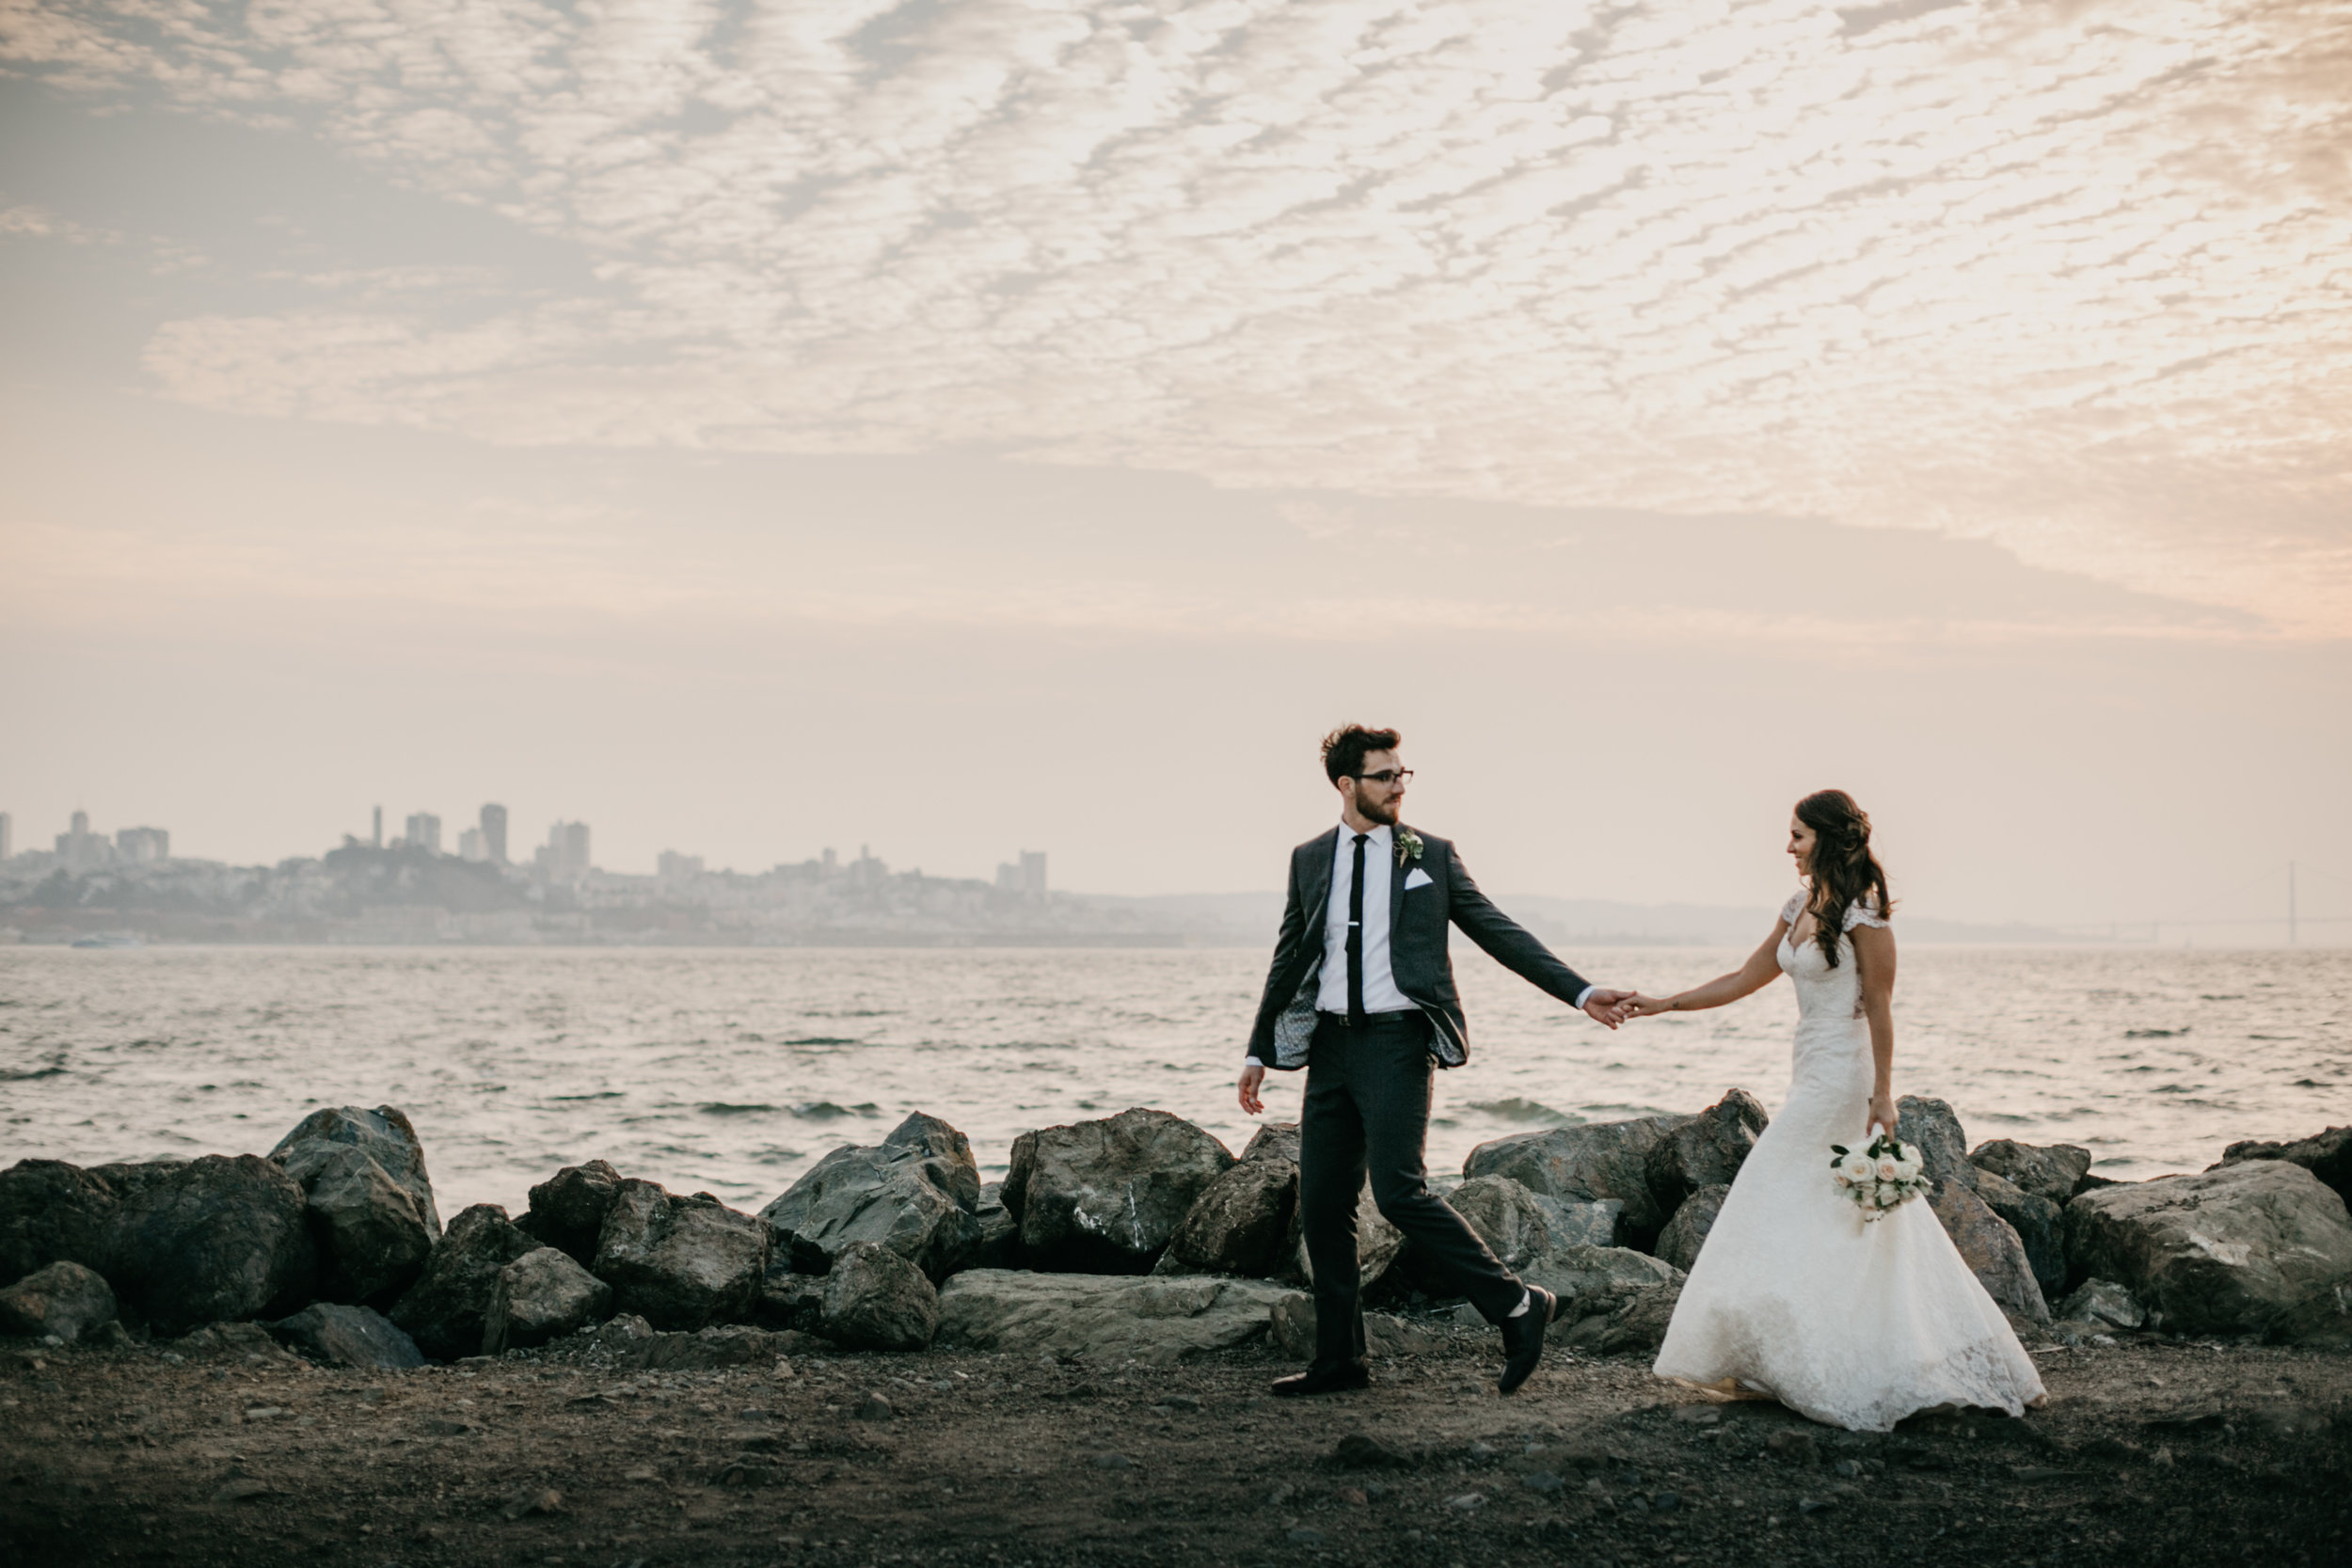 GINA AND MICHAEL / ARACELY, SAN FRANCISCO, CALIFORNIA WEDDING